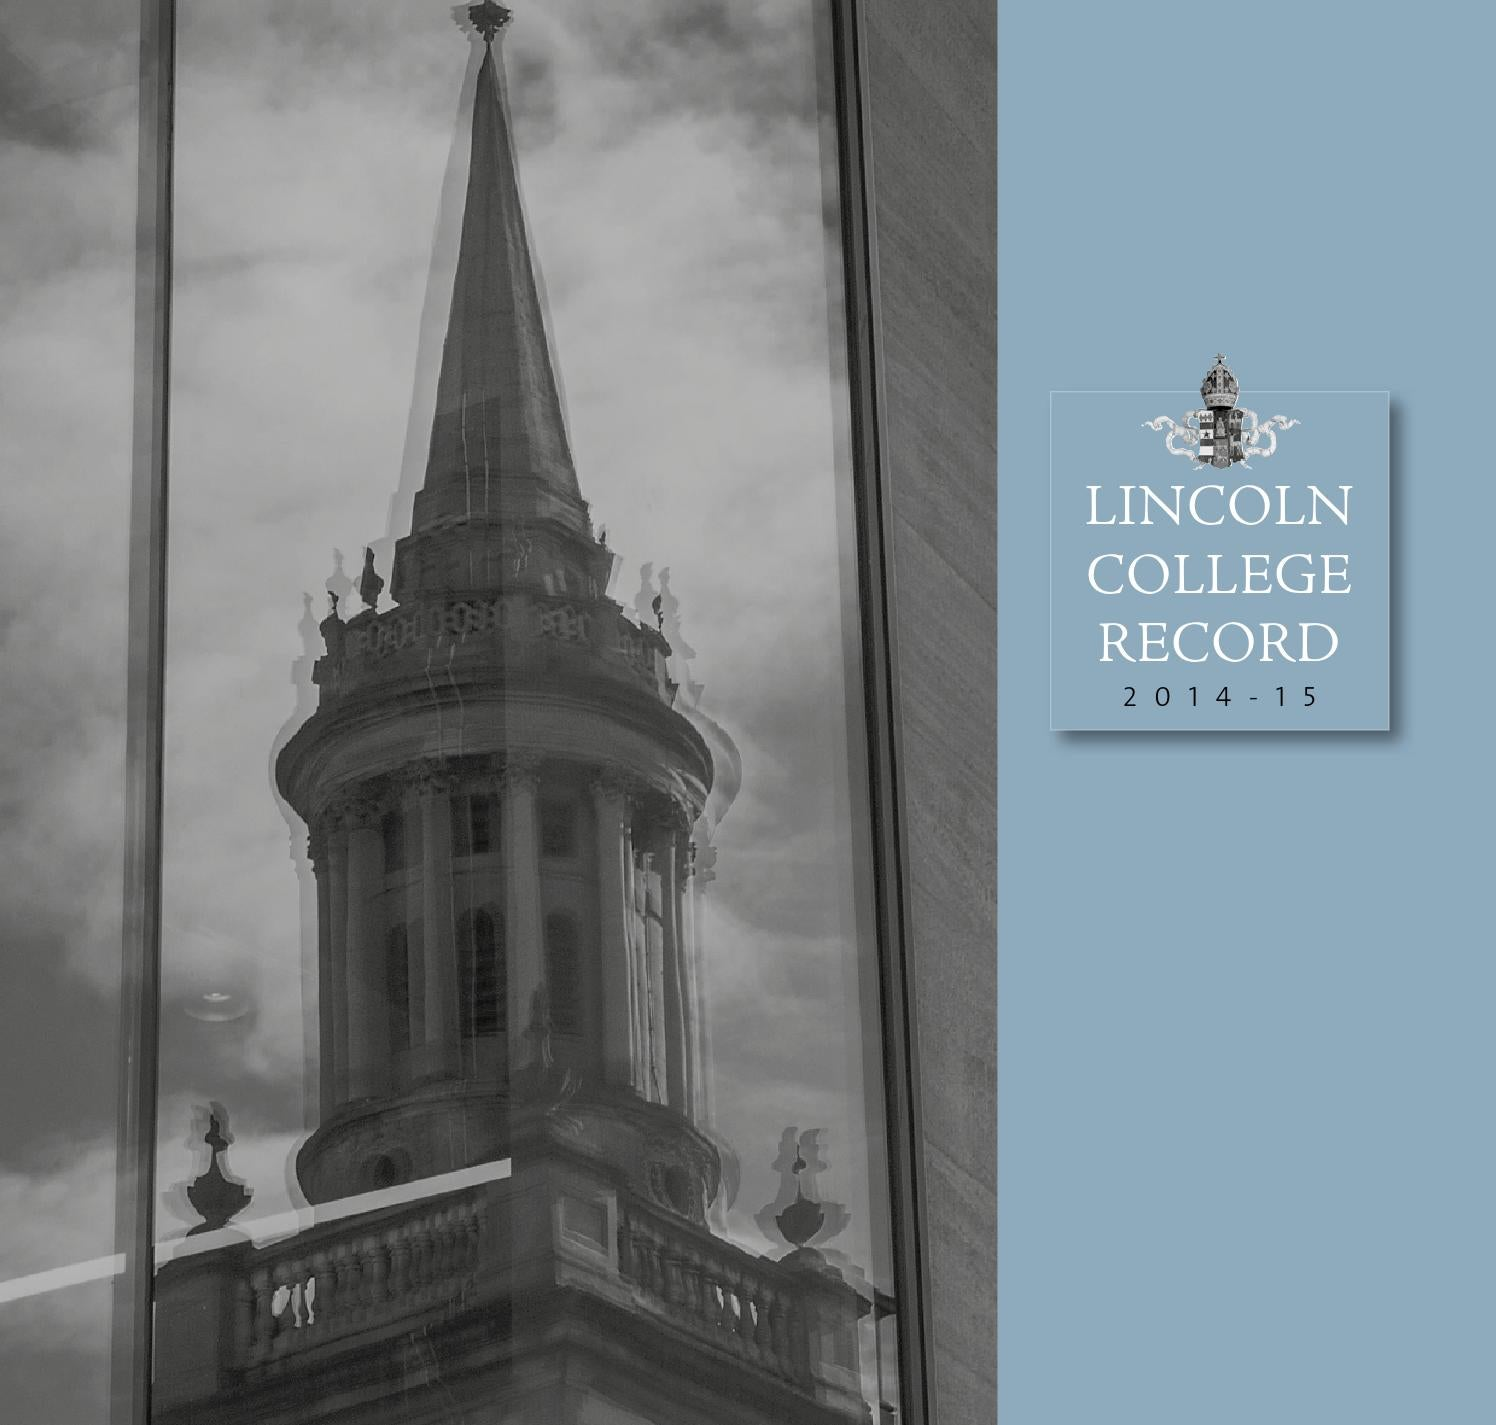 Lincoln College Normal Lincoln College Record 2014 15 By Lincoln College Issuu